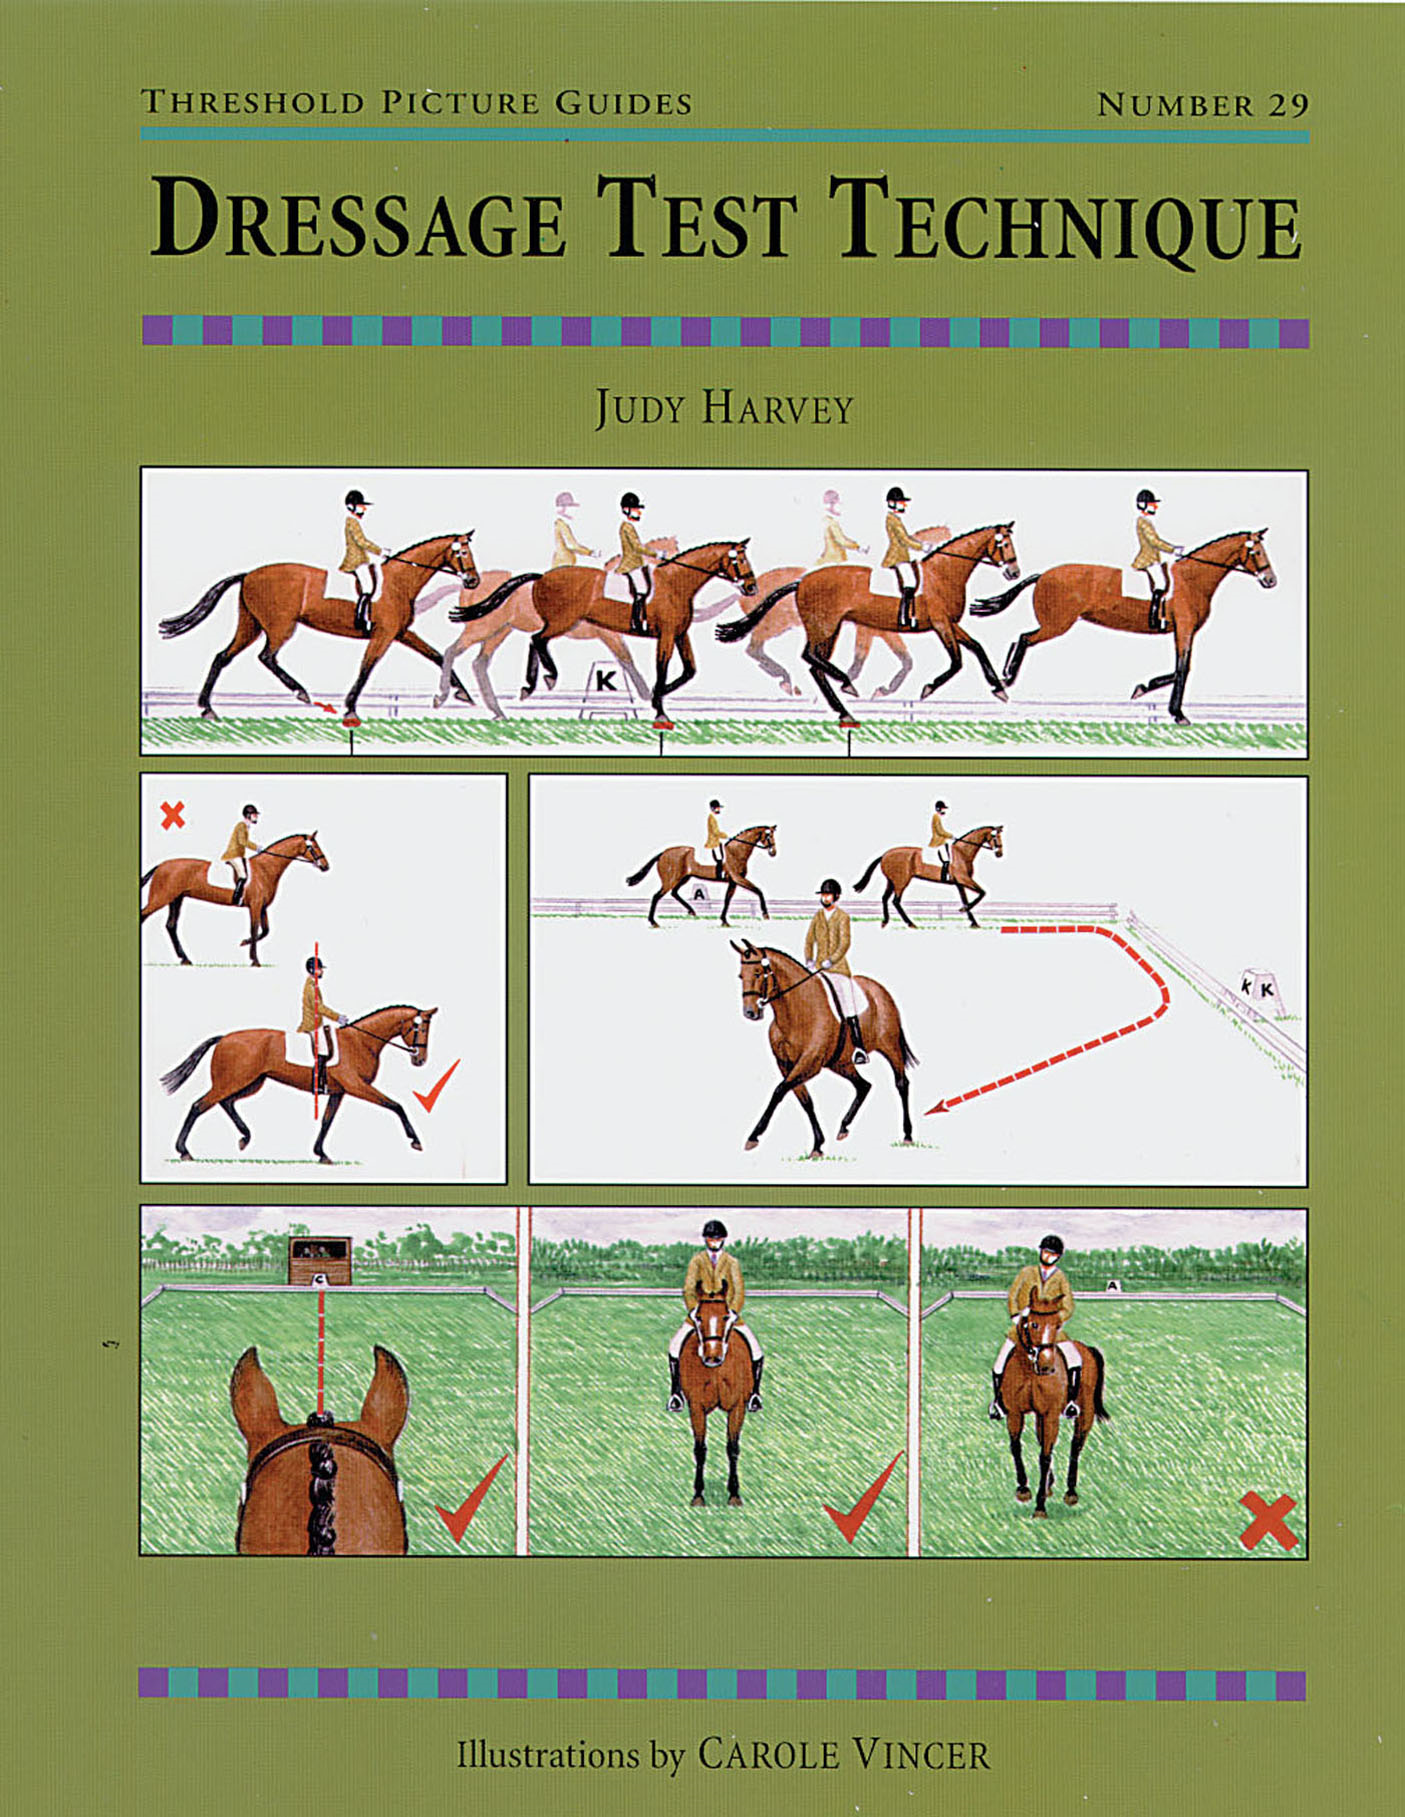 DRESSAGE TEST TECHNIQUES By: JUDY HARVEY,CAROLE VINCER